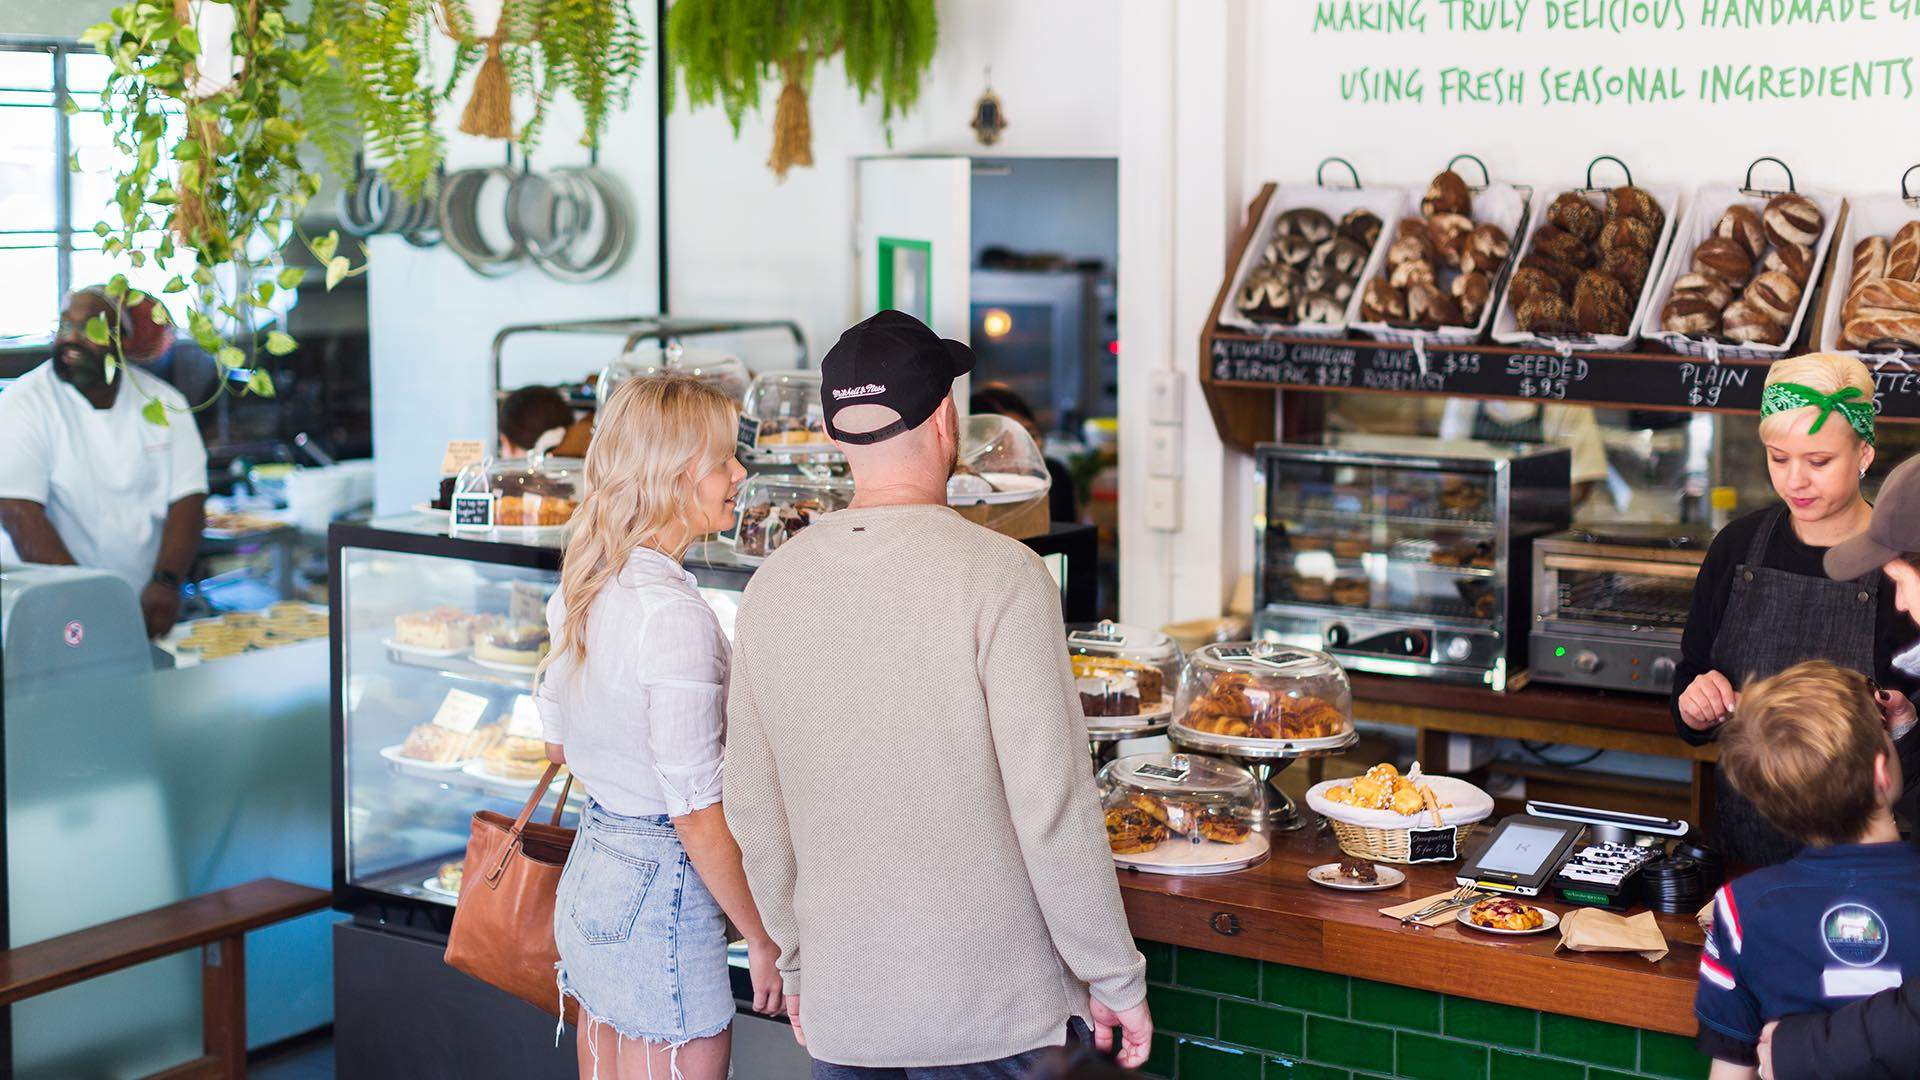 Waverley's Much-Loved Wholegreen Bakery Is Opening a Completely Gluten-Free Cafe in the CBD